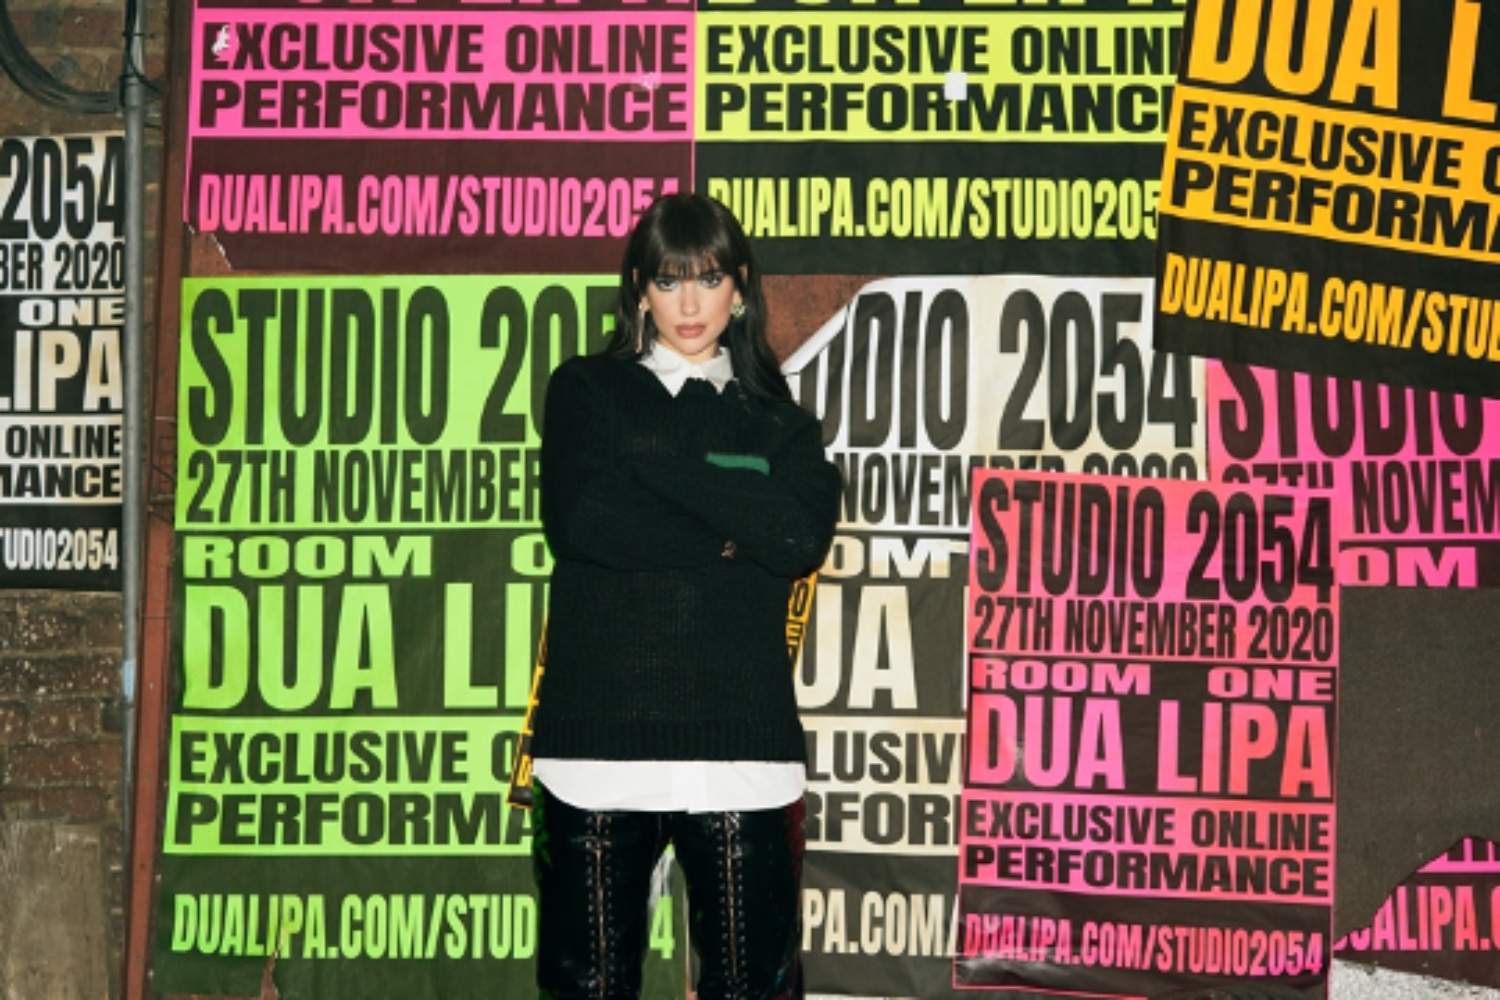 Dua Lipa presents Studio 2054